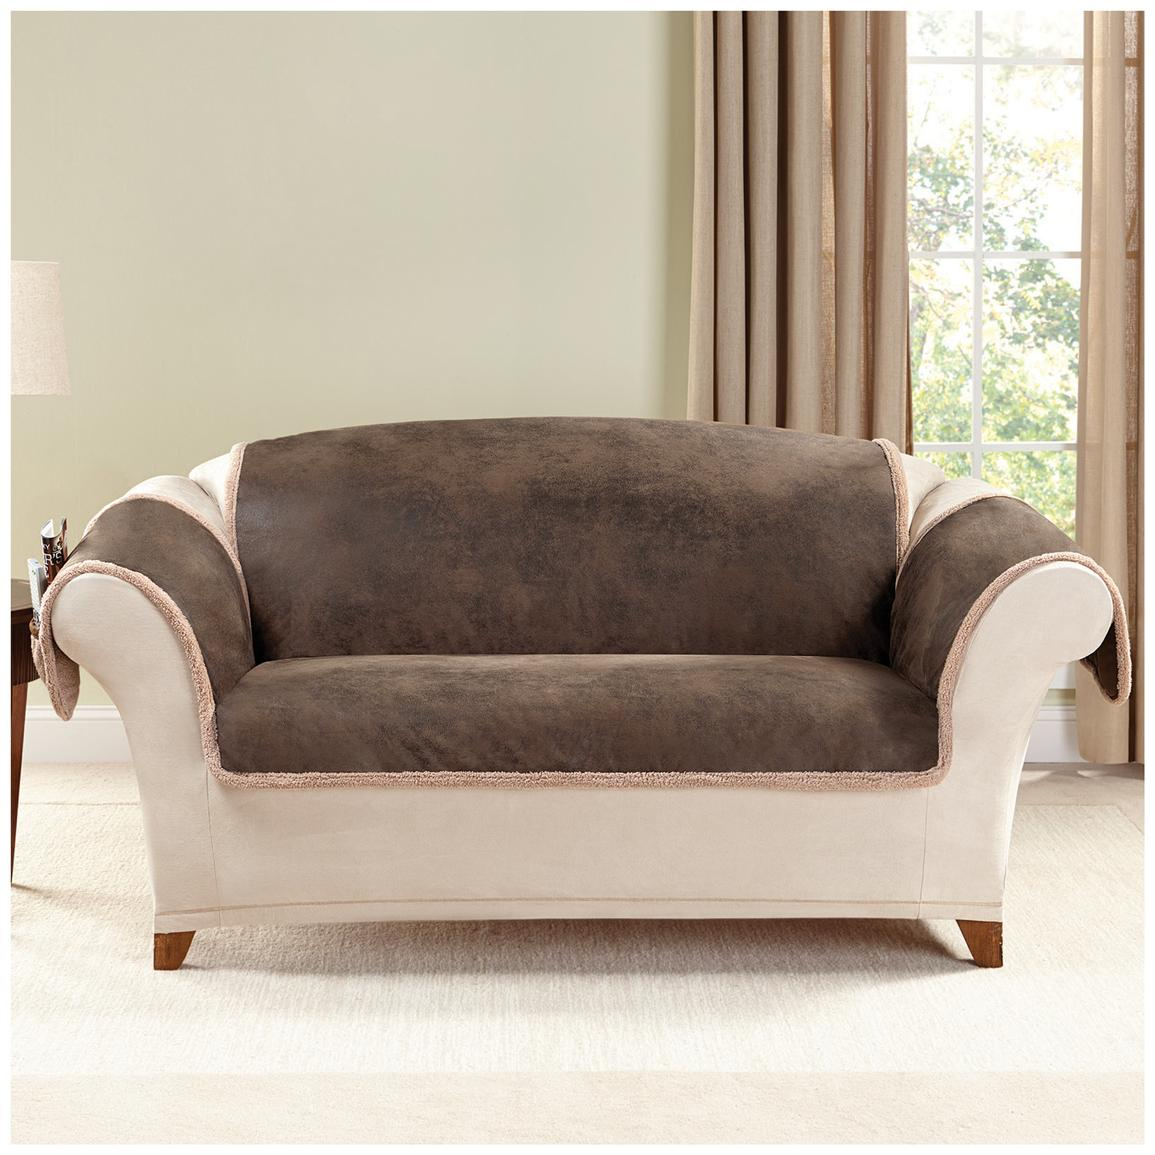 Pet Throw Love Seat Slip Covers Decorated On The Gorgeous Sofa For Living Room With Brown